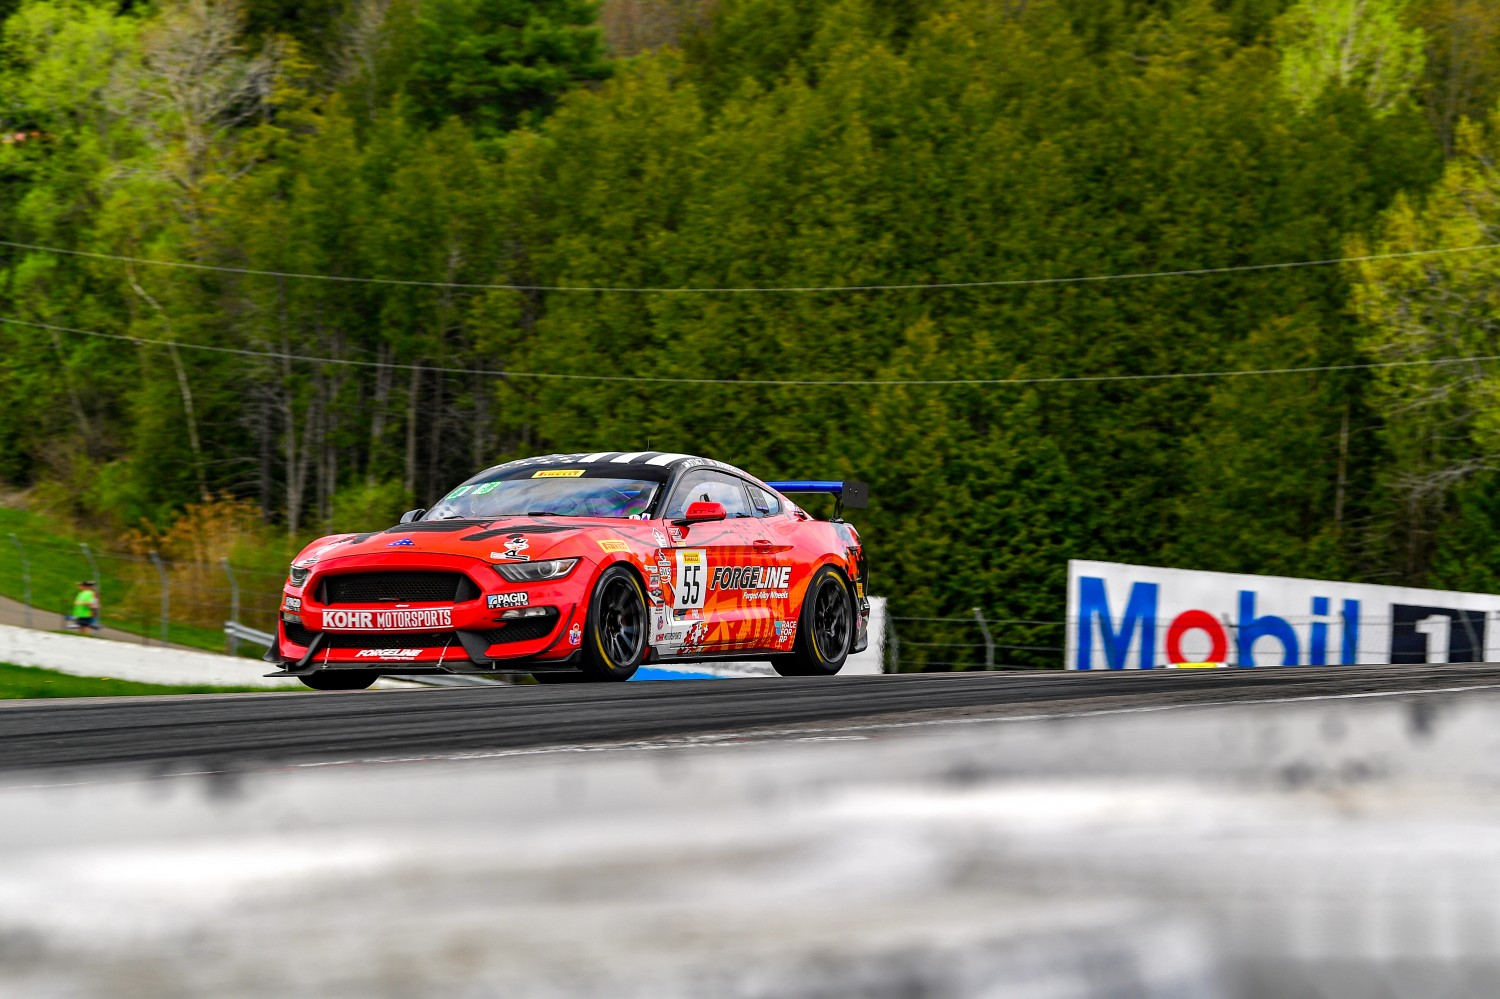 #55 Ford Mustang GT4 of Nate Stacy    Castrol Victoria Day SpeedFest Weekend, Clarington ON | Gavin Baker/SRO